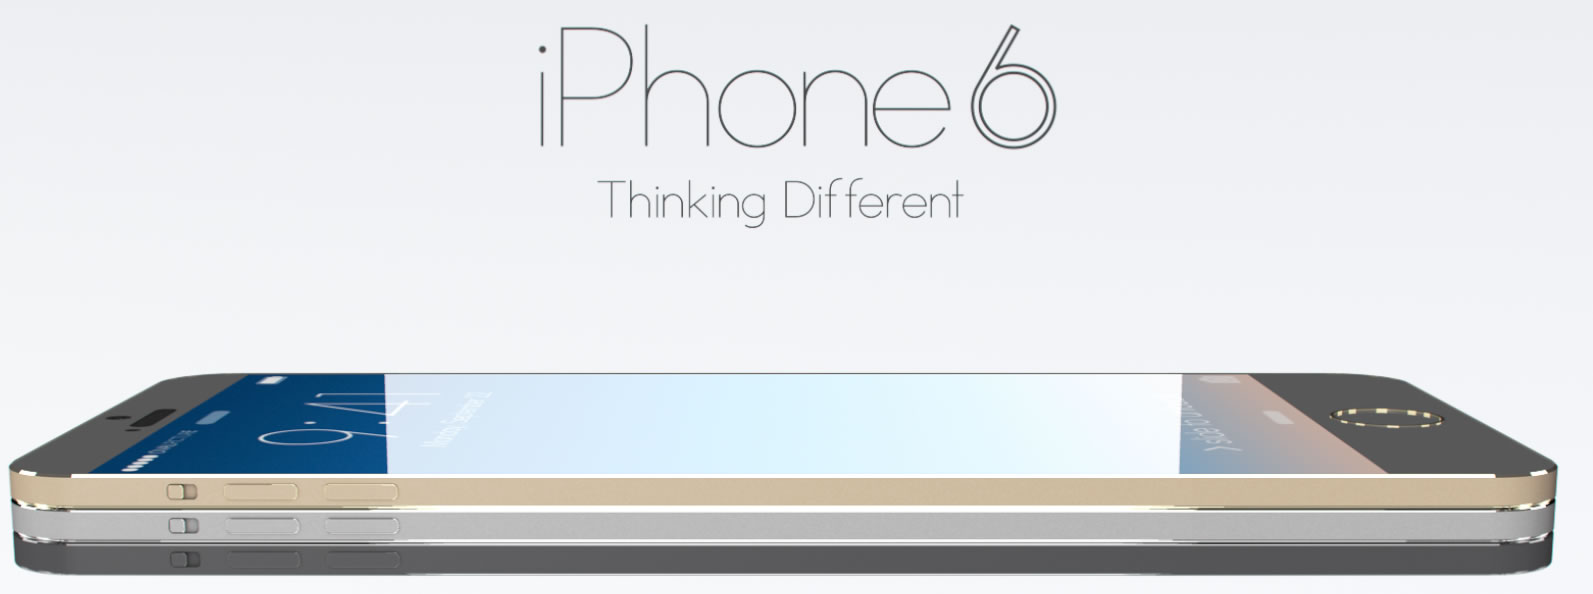 iPhone 6 Concept Photo 2